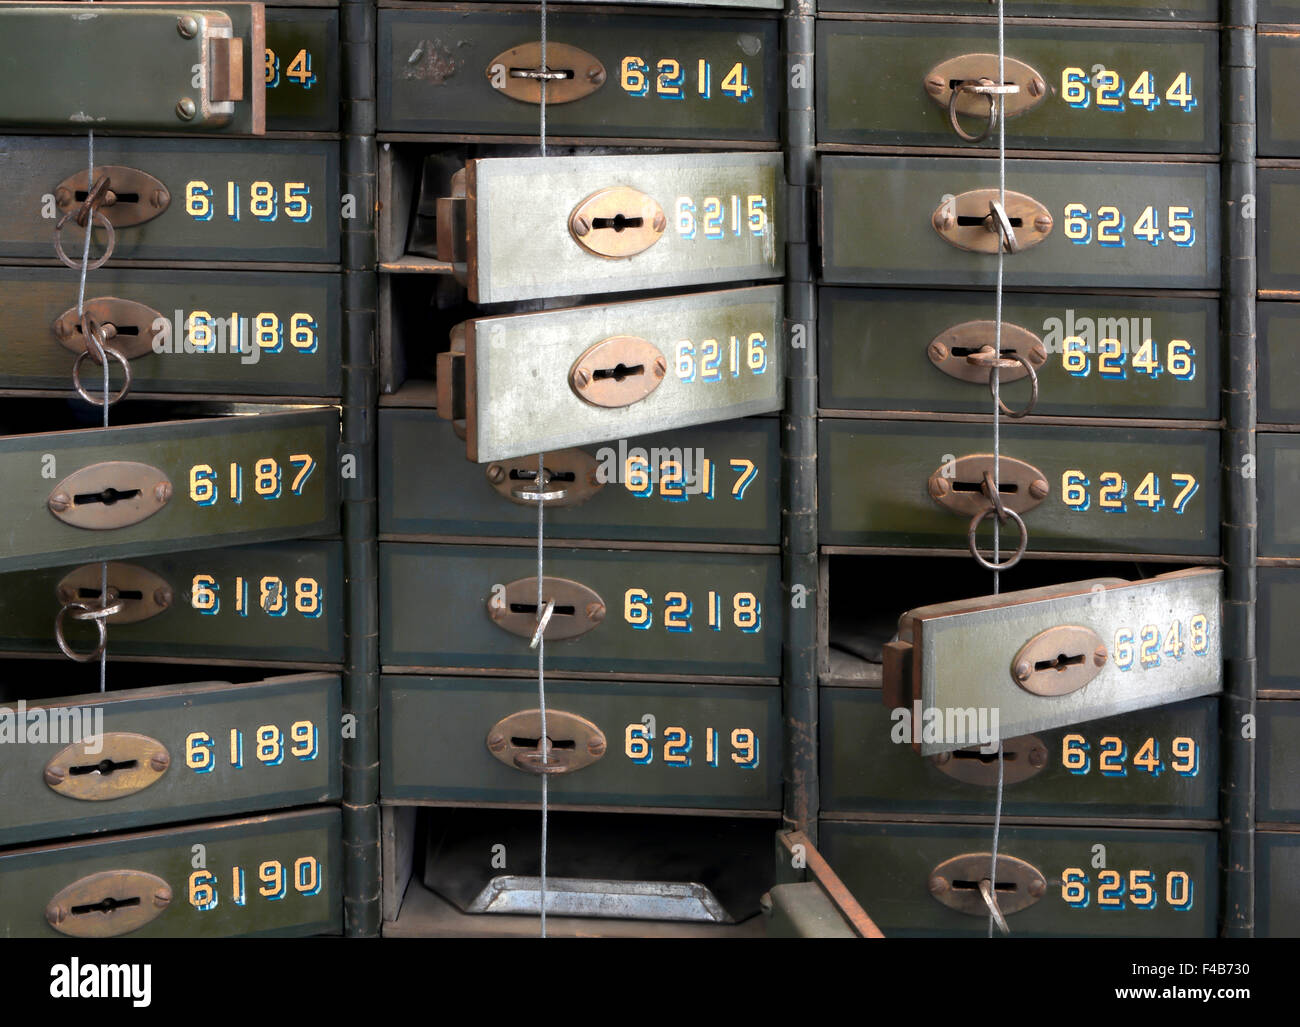 Deposit boxes in a bank - Stock Image